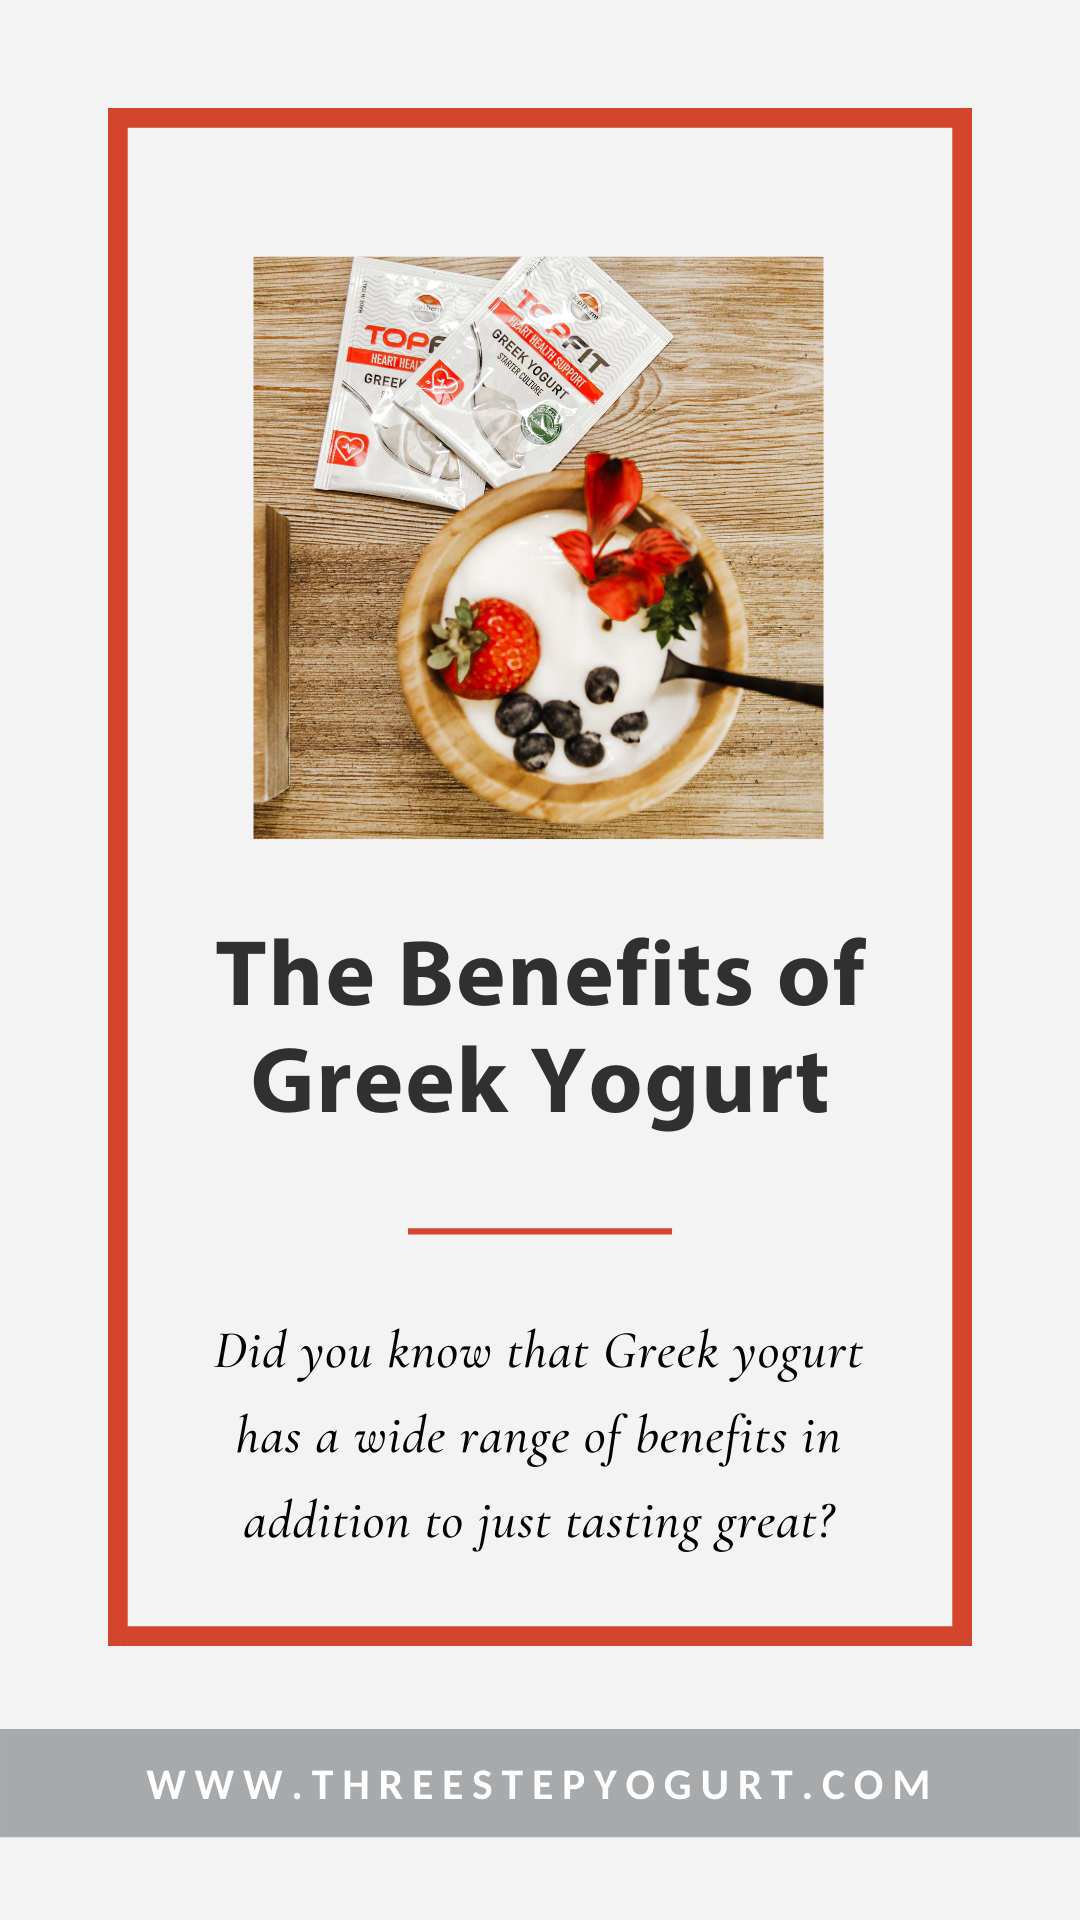 How To Make Yogurt Part of Your Morning Routine